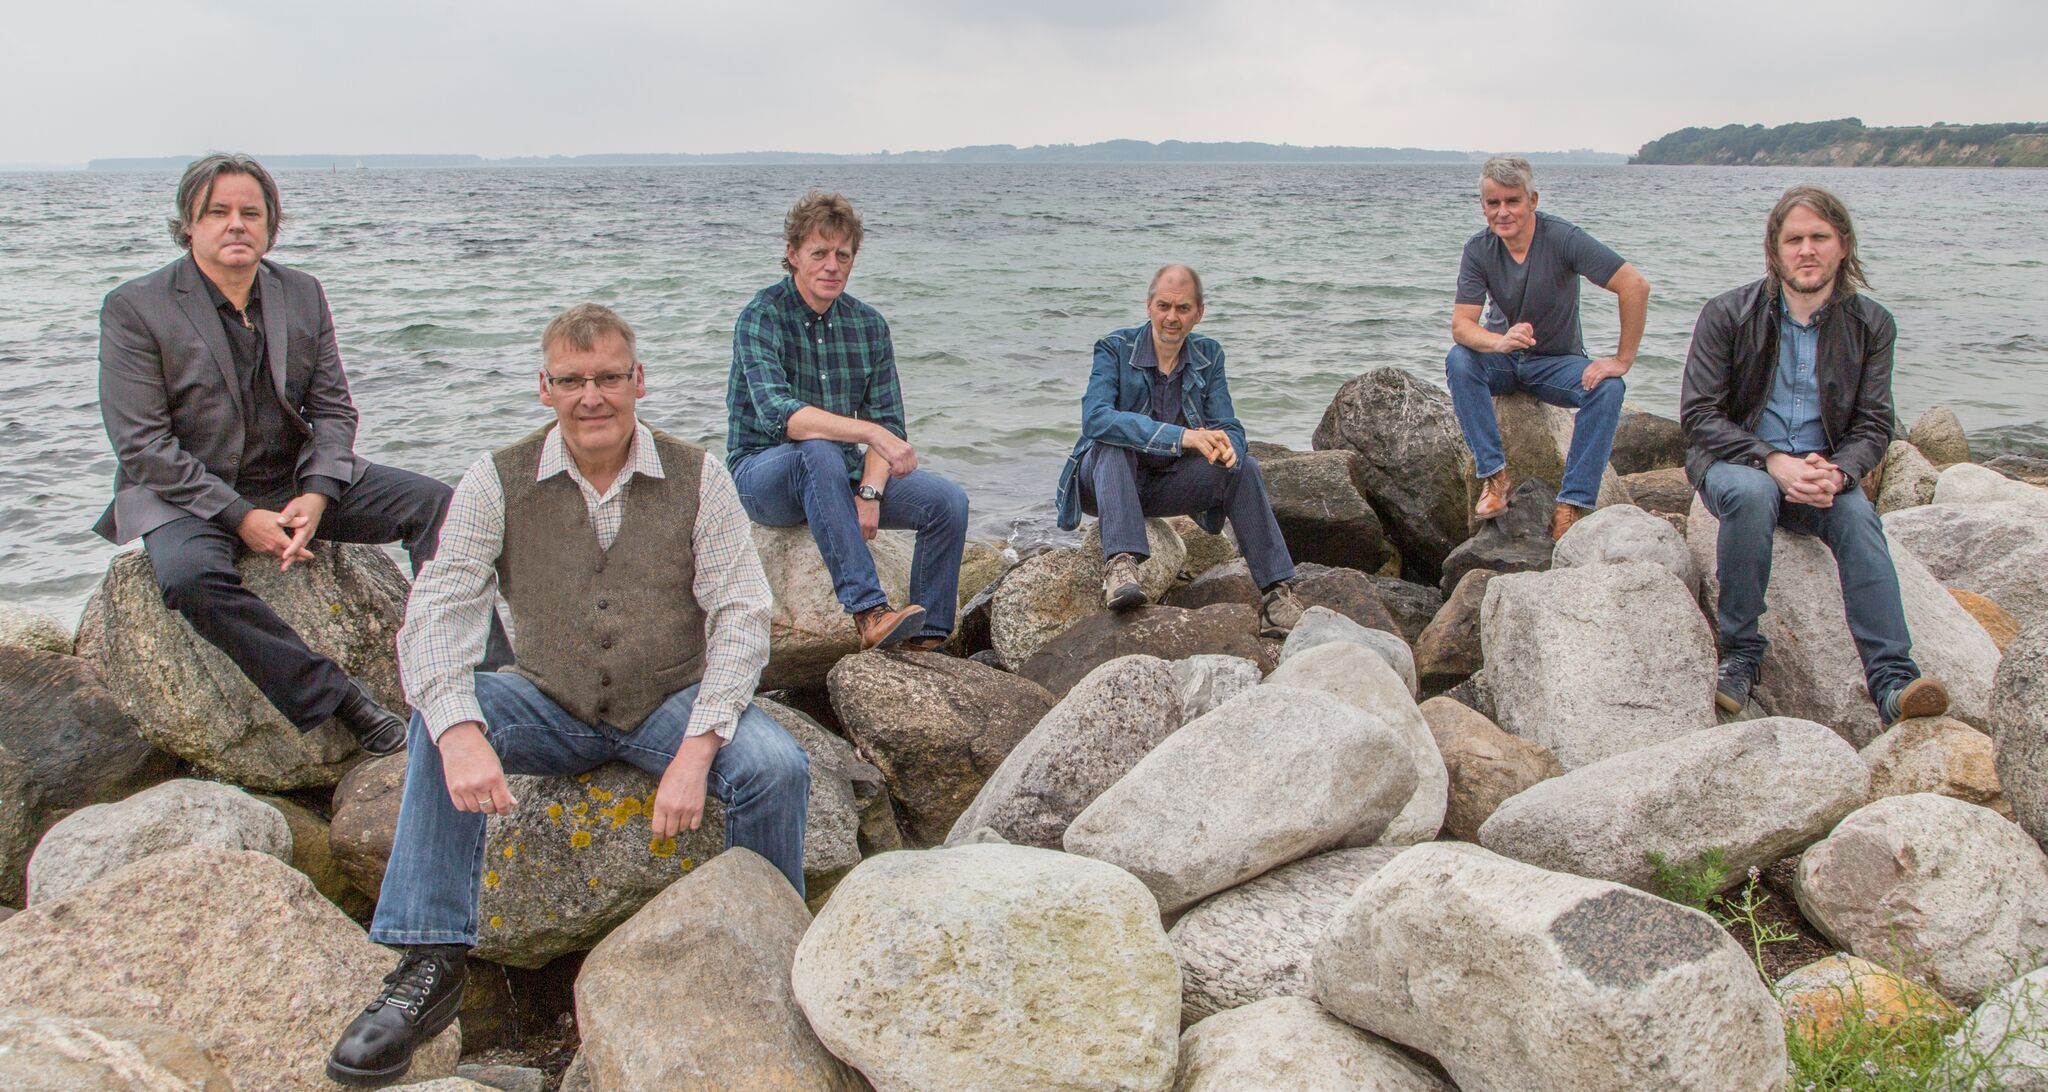 Runrig's farewell show was at Stirling's City Park on Saturday